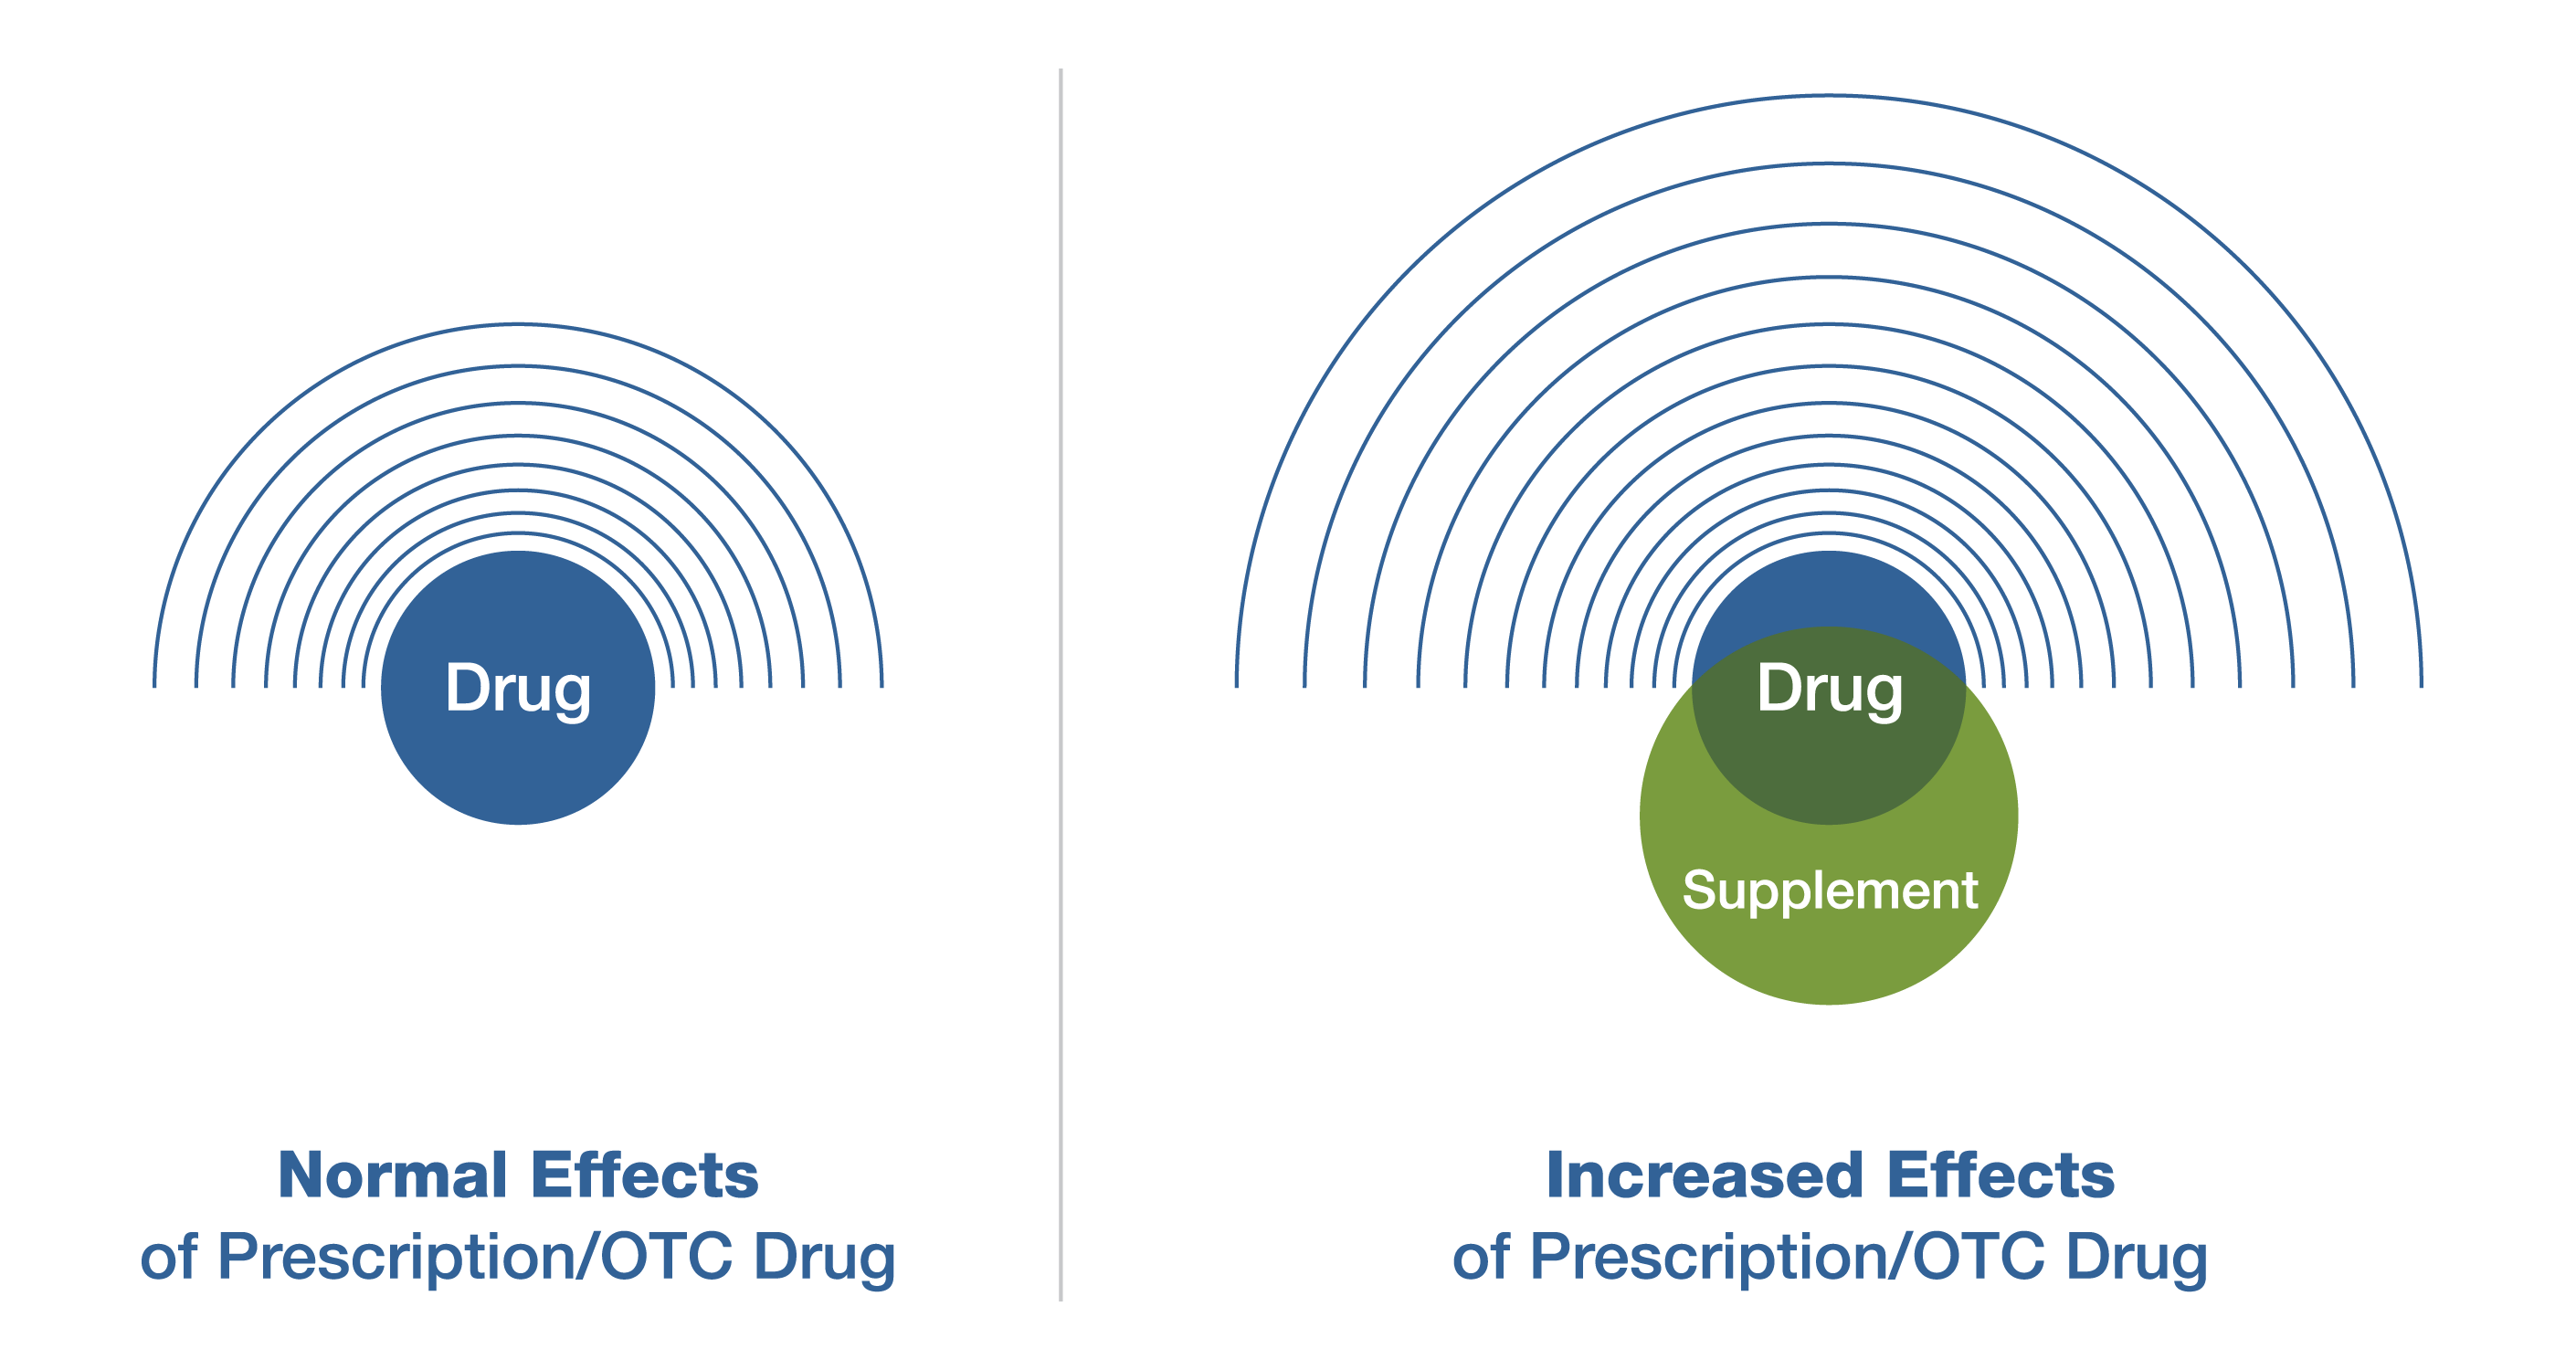 Drug + Supplement = the drug's effect may be too strong, and side effects may increase